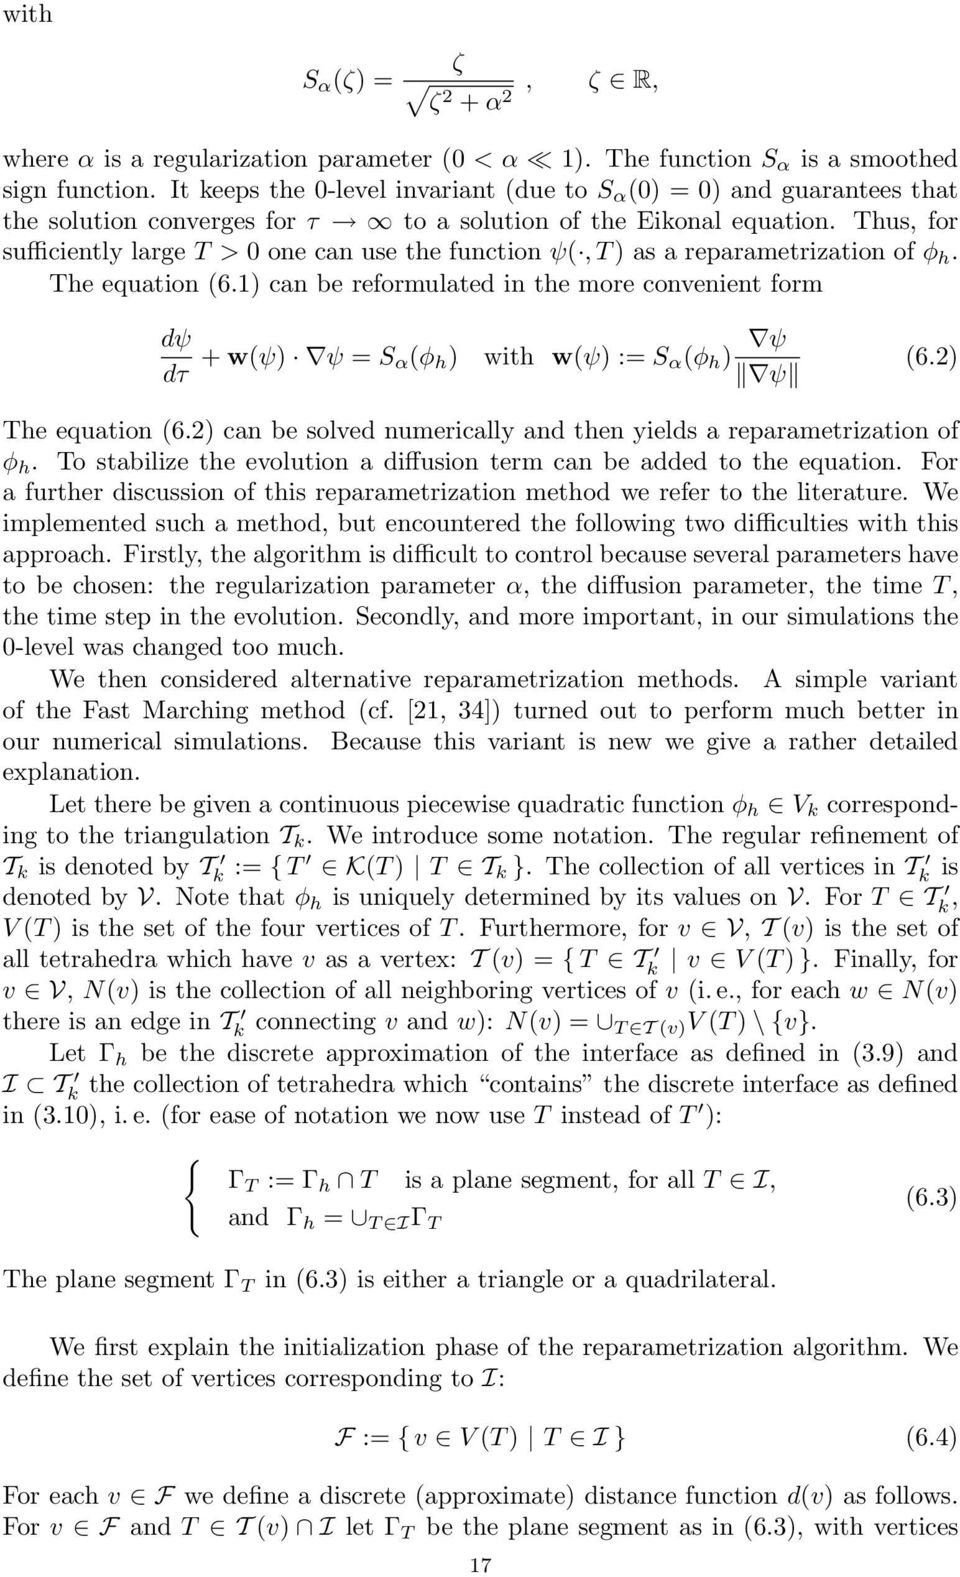 Thus, for sufficiently large T > 0 one can use the function ψ(,t) as a reparametrization of φ h. The equation (6.